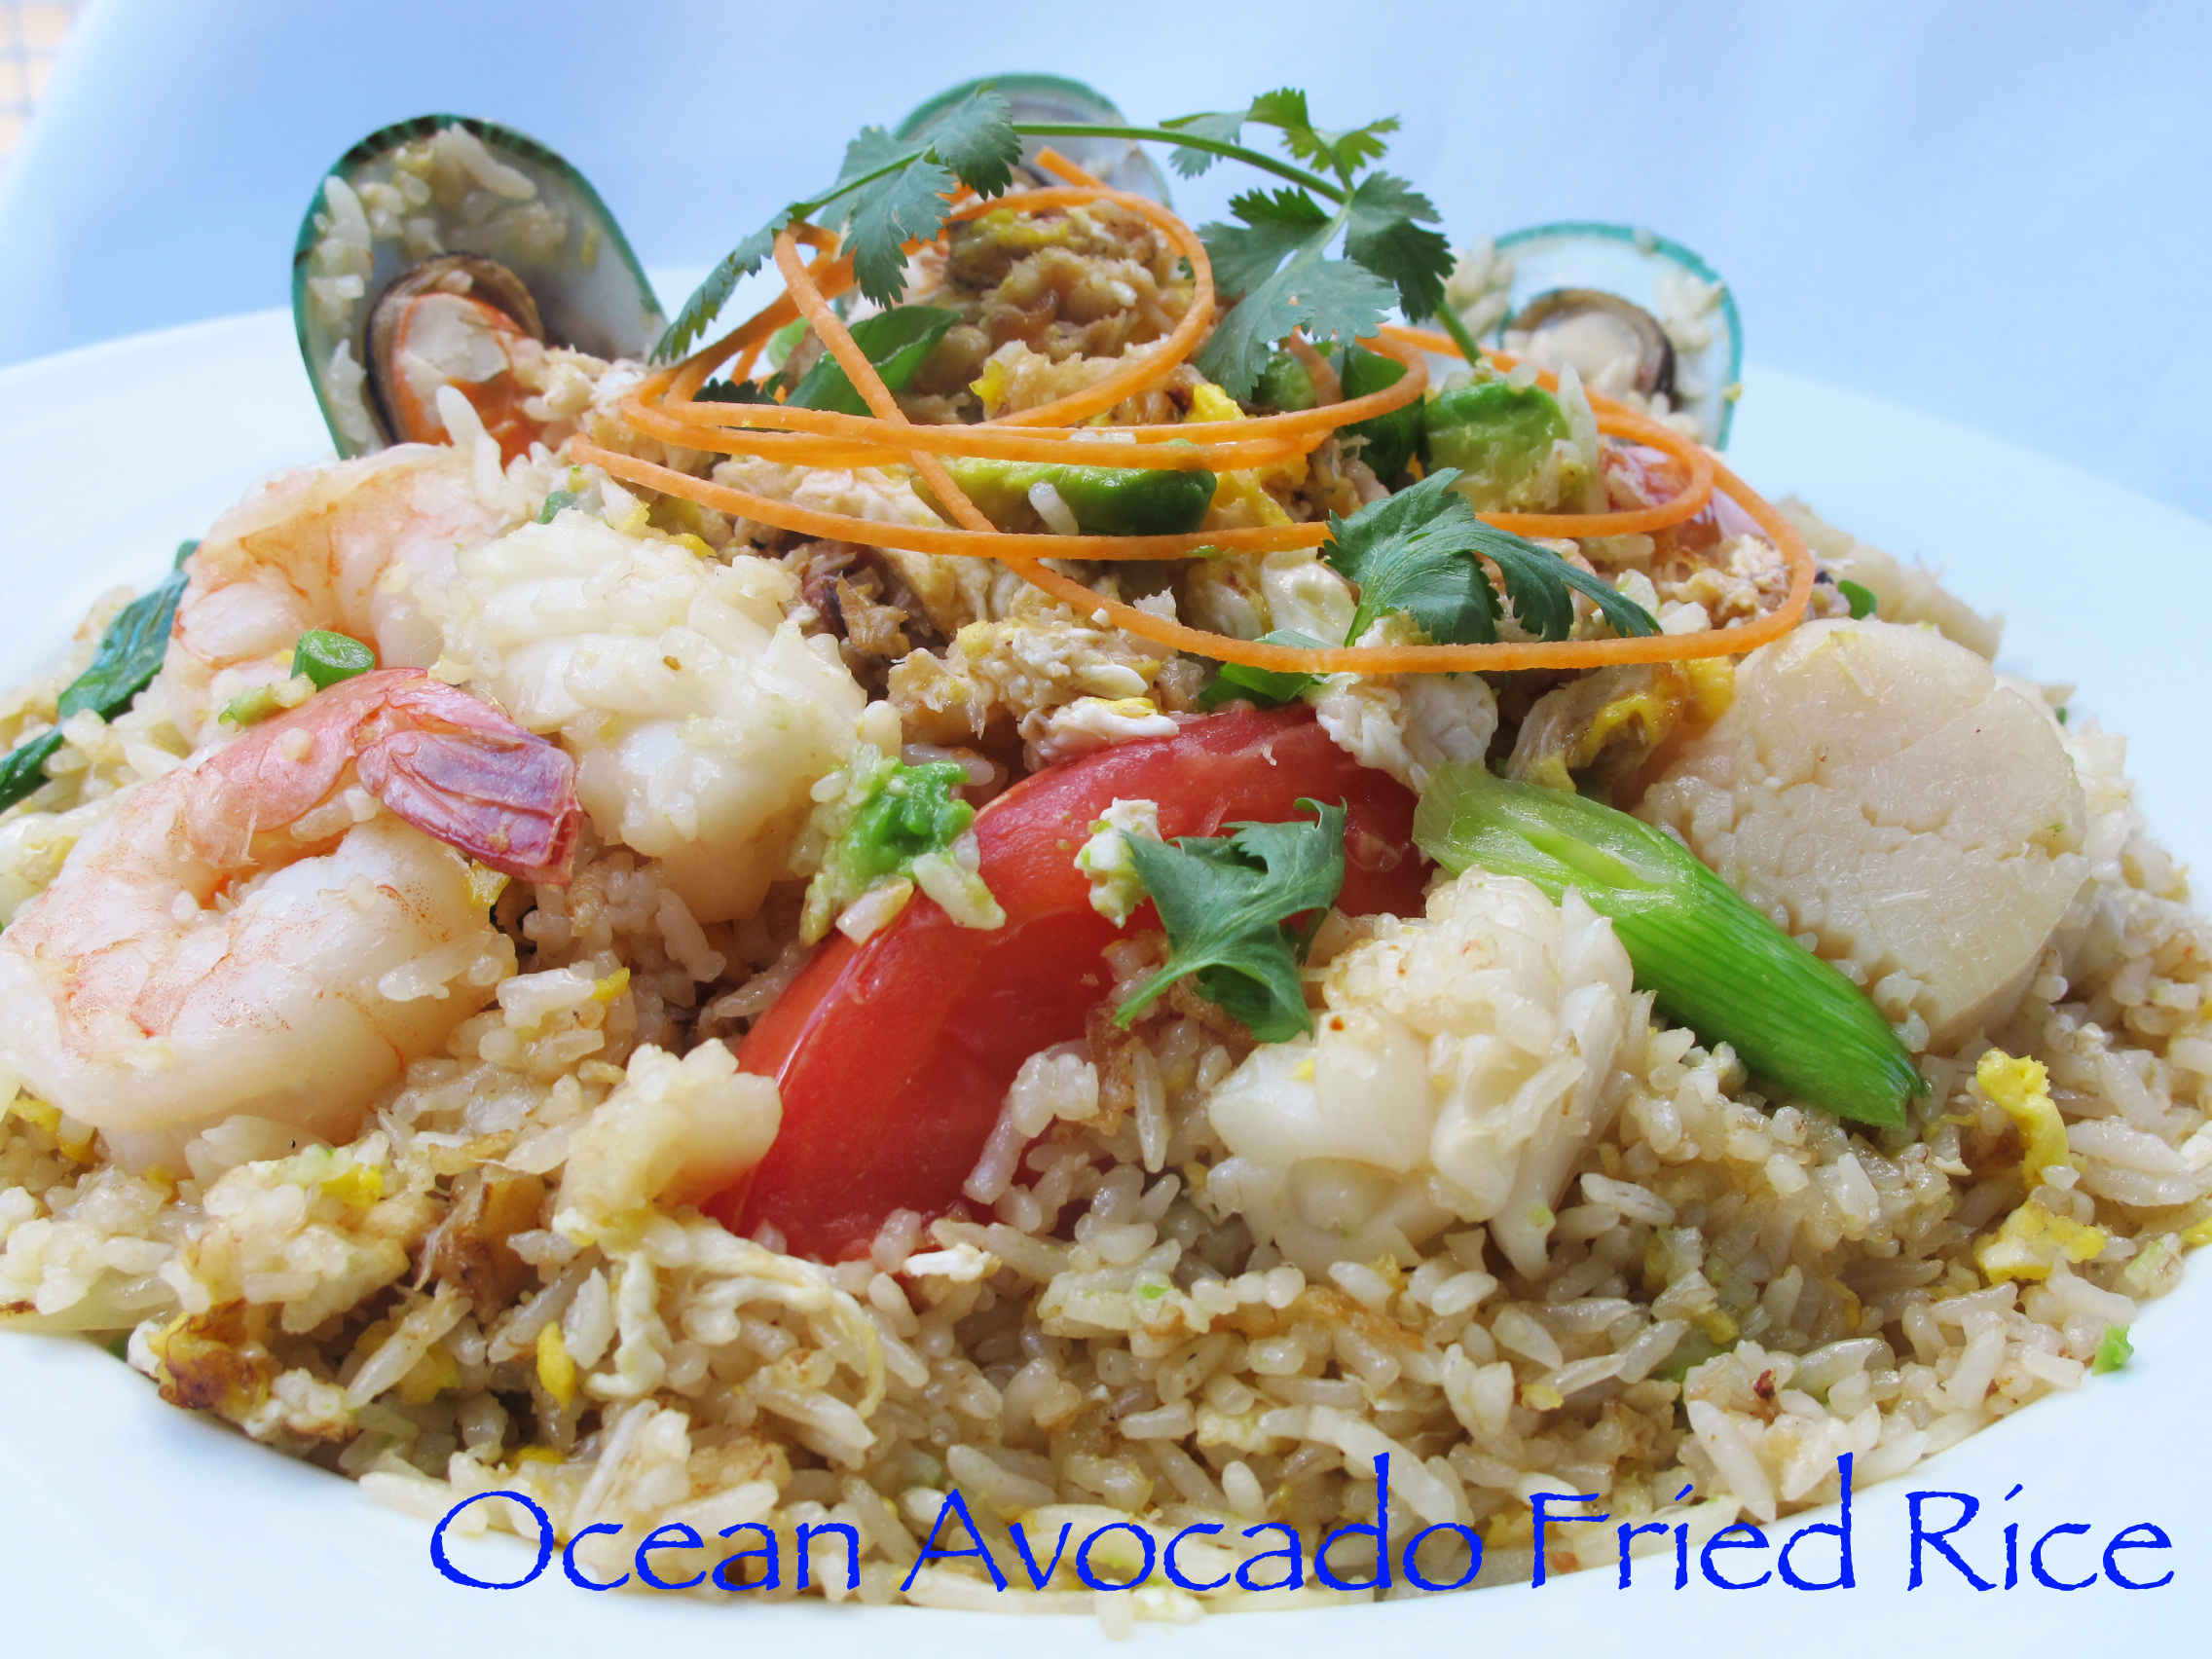 OCEAN AVOCADO FRIED RICE 1.jpg